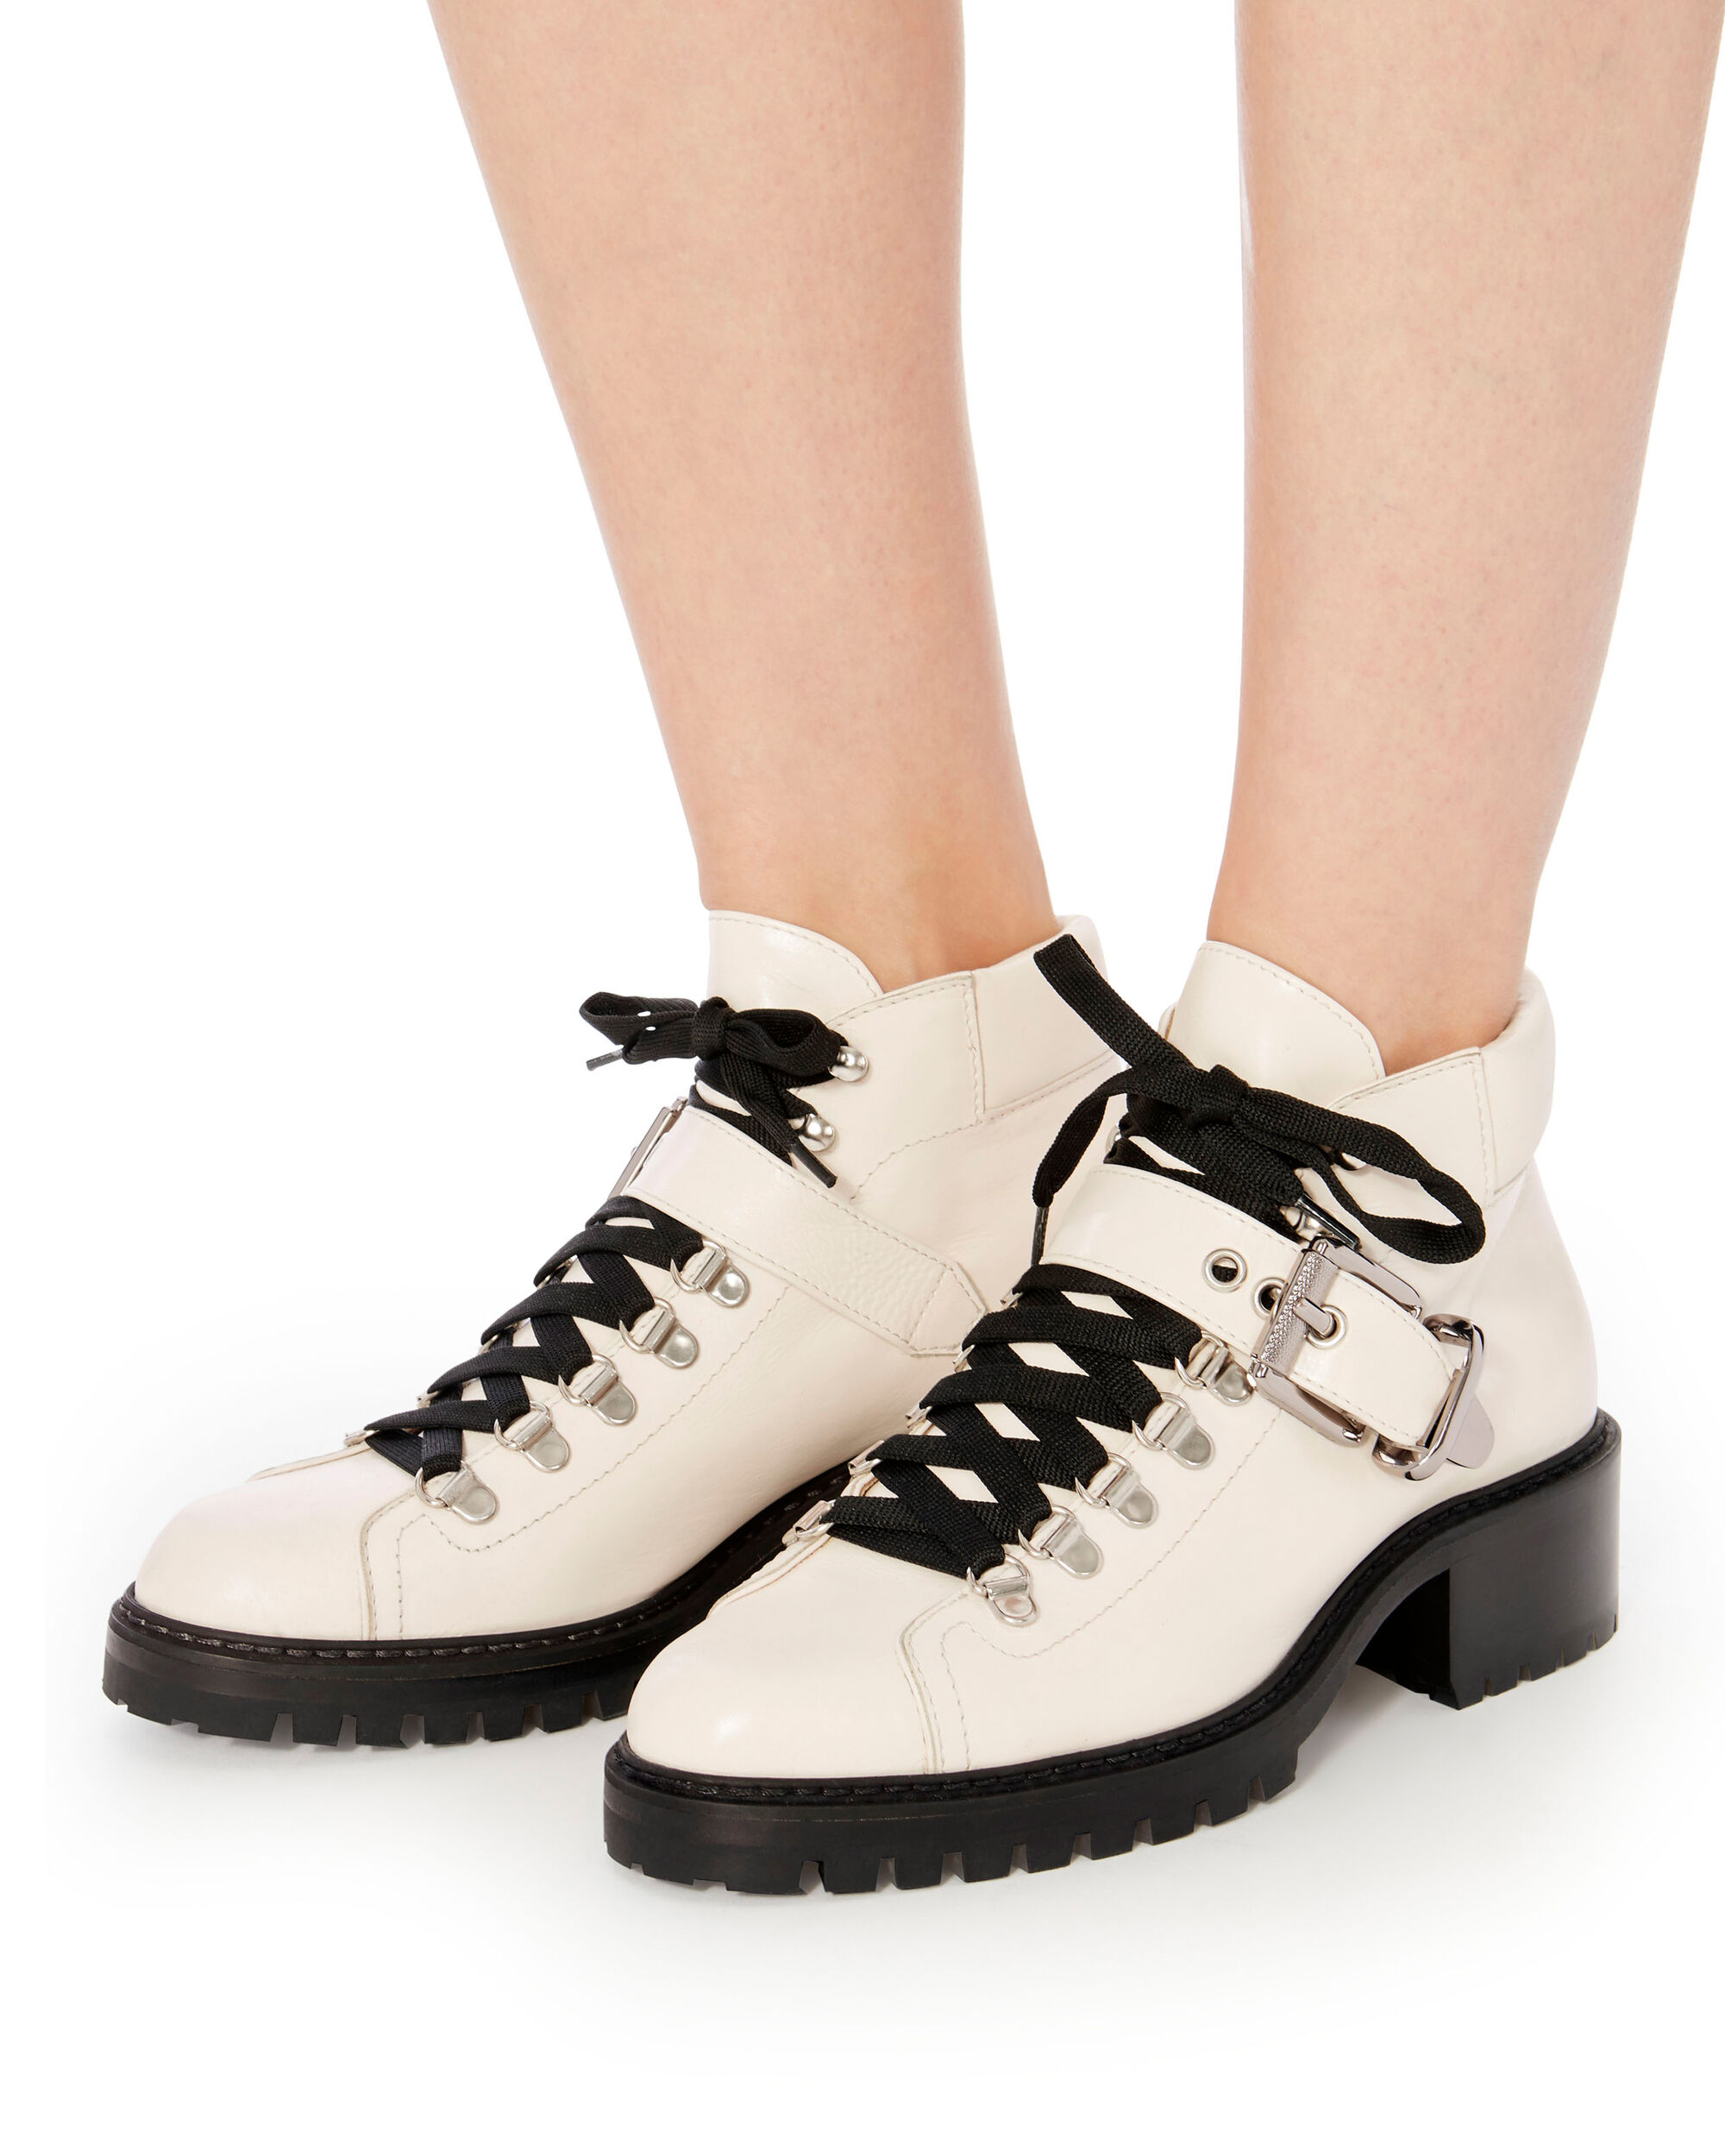 Lug Sole White Hiker Boots, WHITE, hi-res